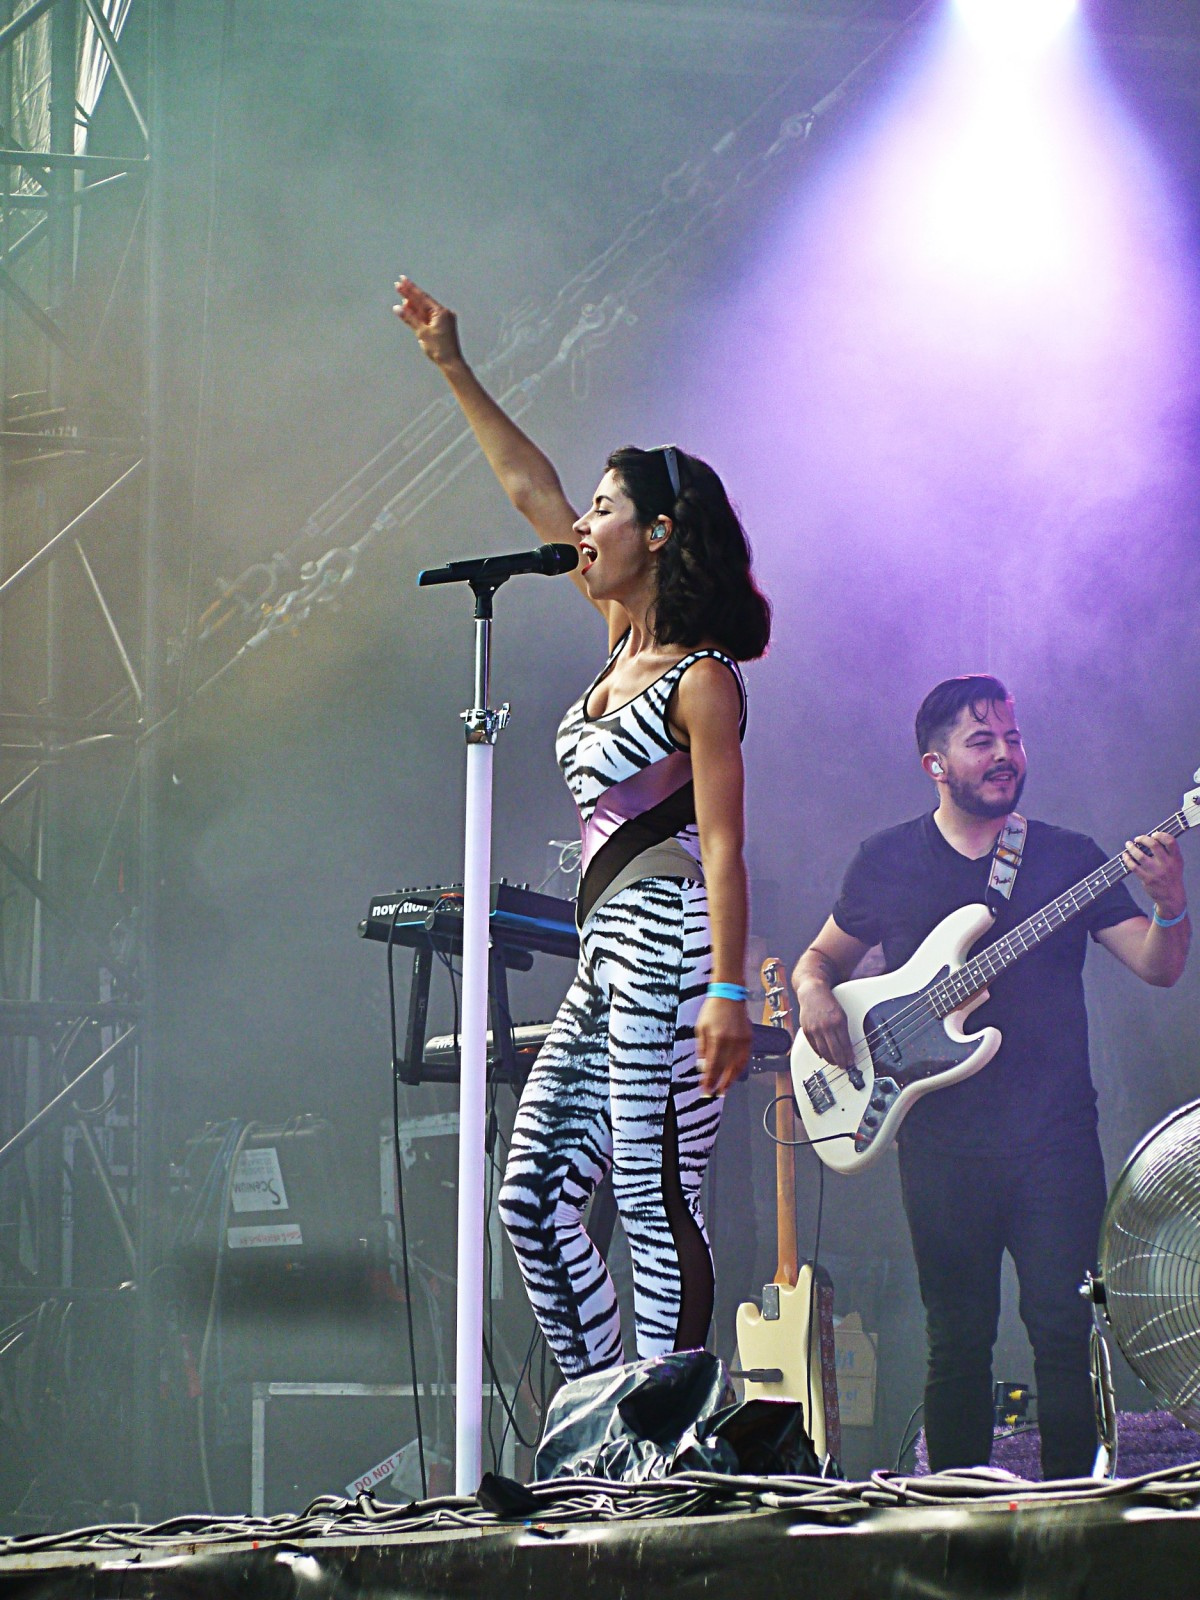 Marina and the concert diamonds live Rock en Seine 2015 festival france tour photo stage by united states of paris blog